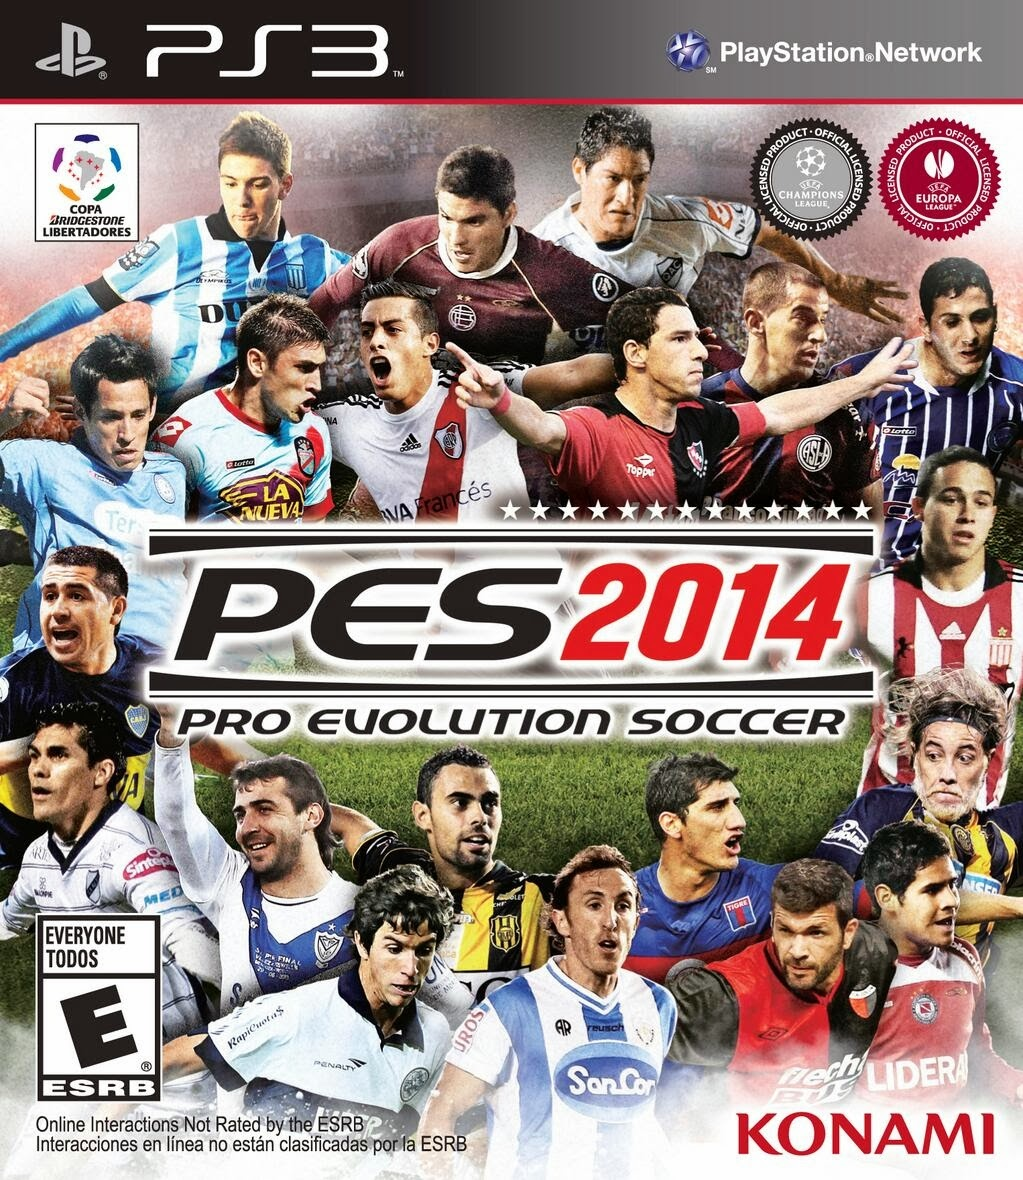 Pes 14 ps2 download free